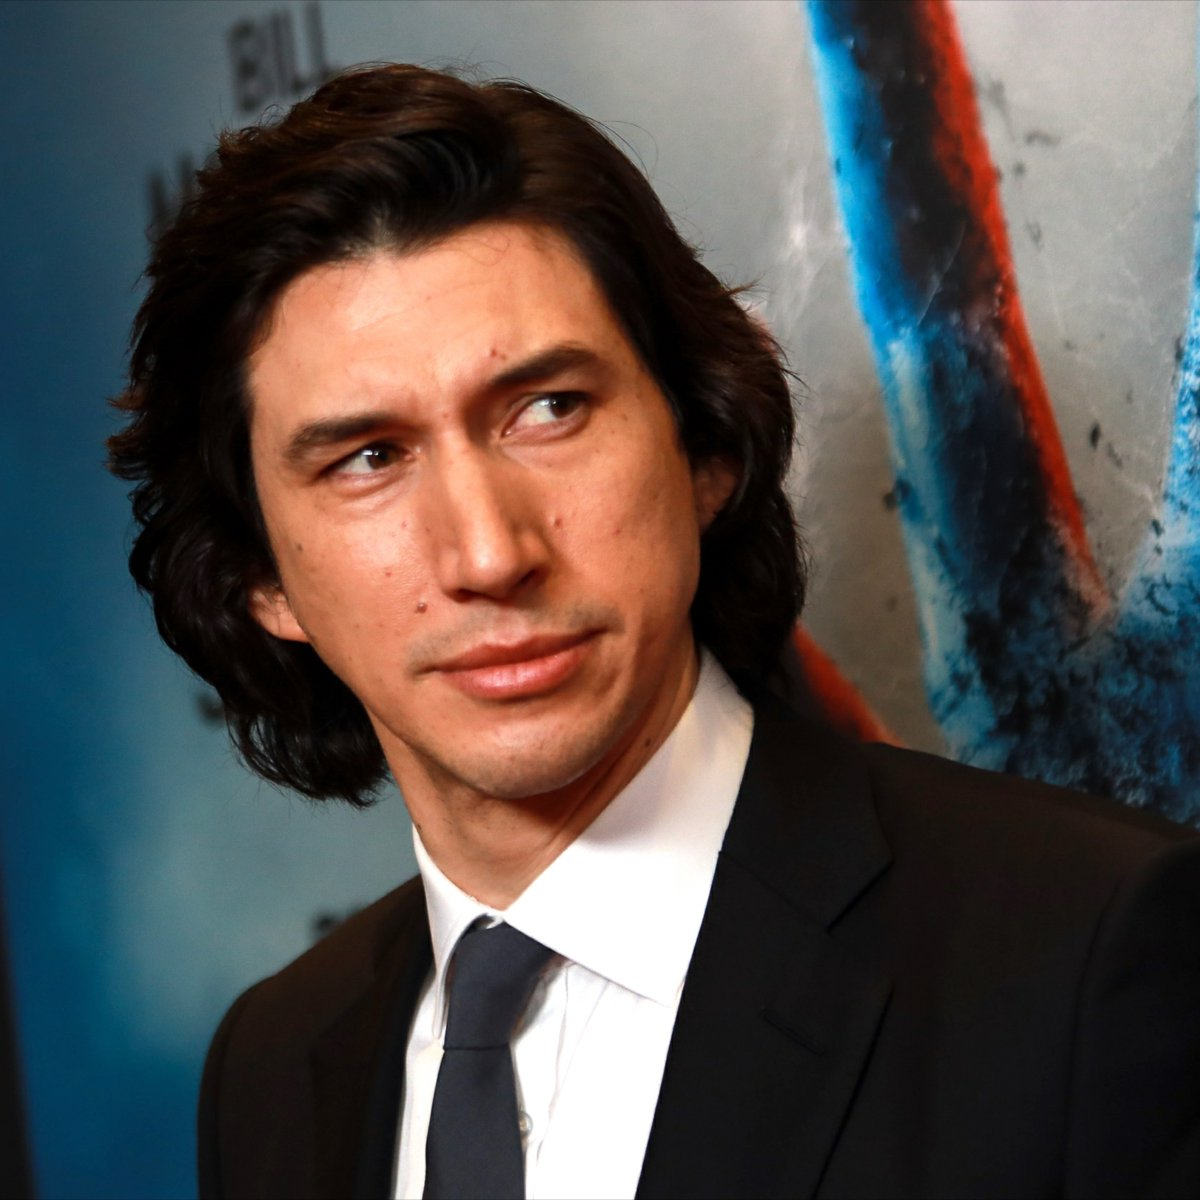 Adam Driver at The Dead Don't Die premiere in New York City (June 11, 2019) https://t.co/0jlGYvyar7